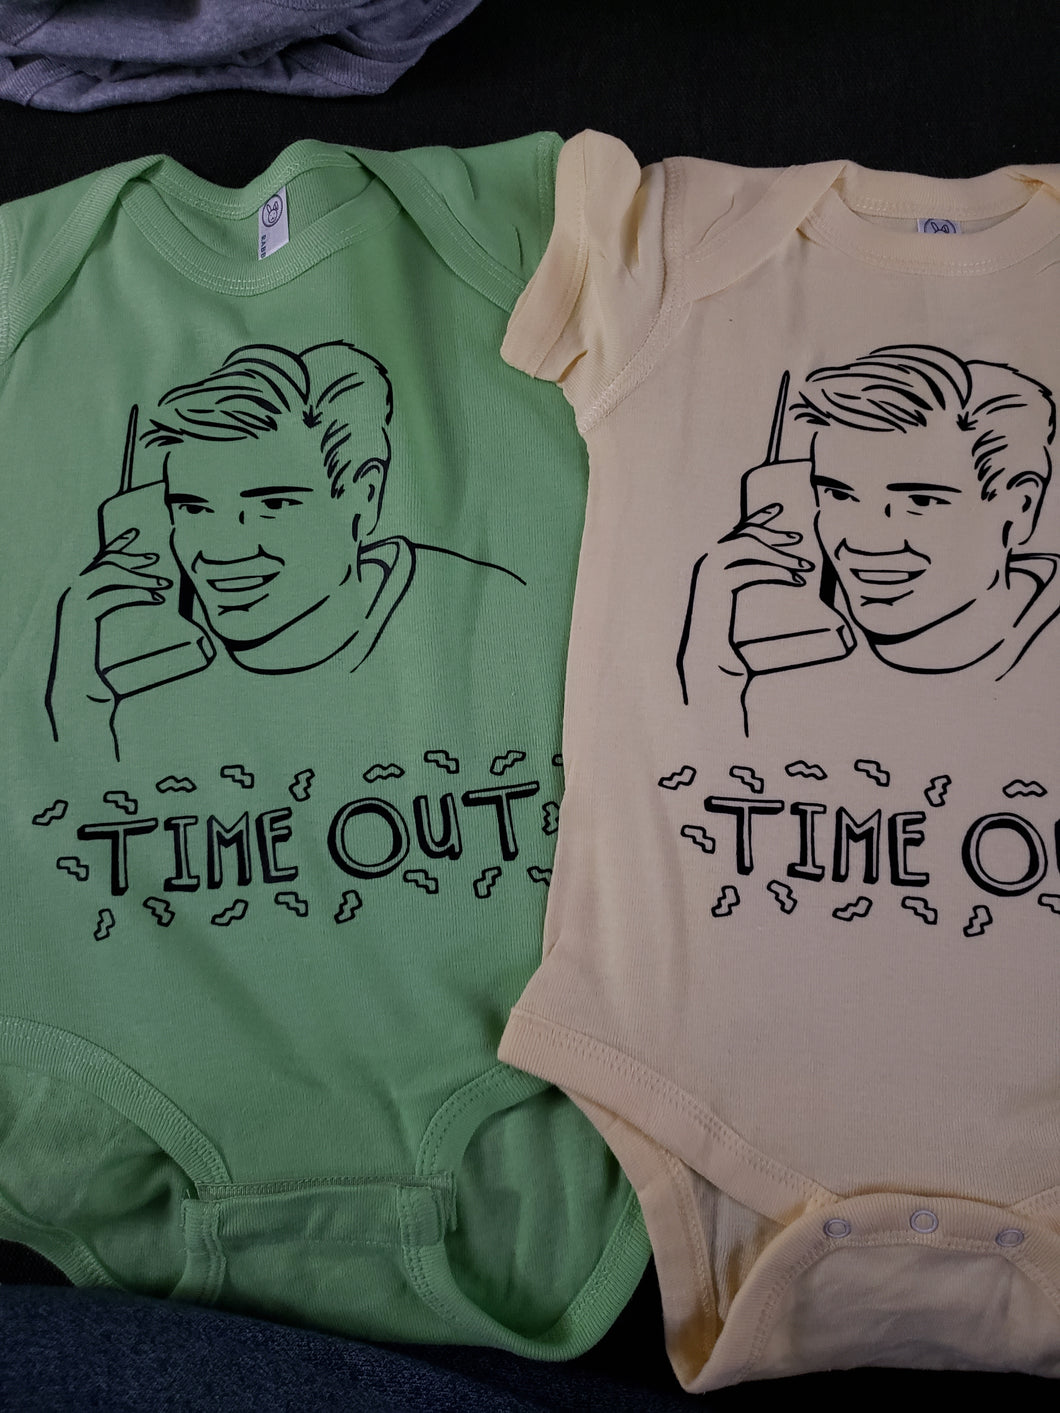 Time out onesies